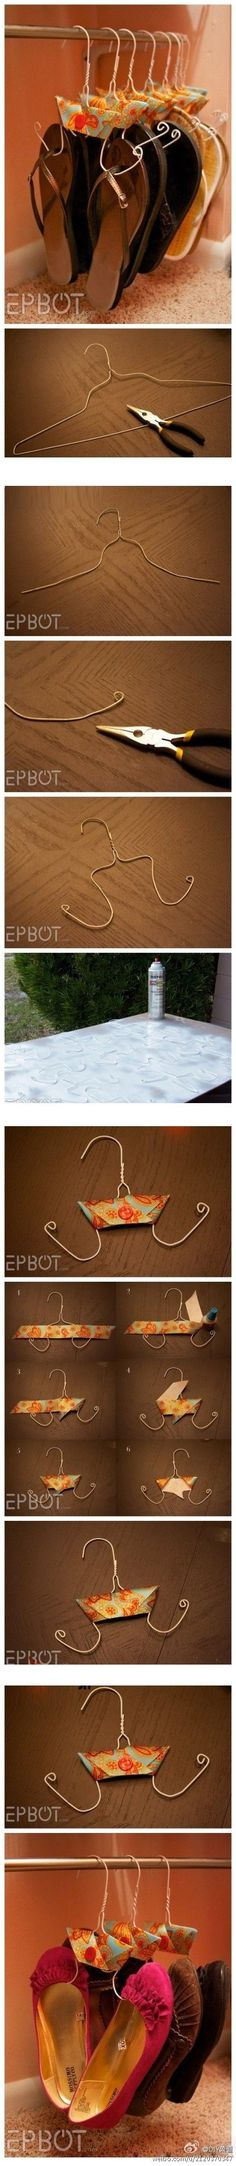 Turn Clothes Hangers Into Shoe Hangers | 31 Insanely Easy And Clever DIY Projects